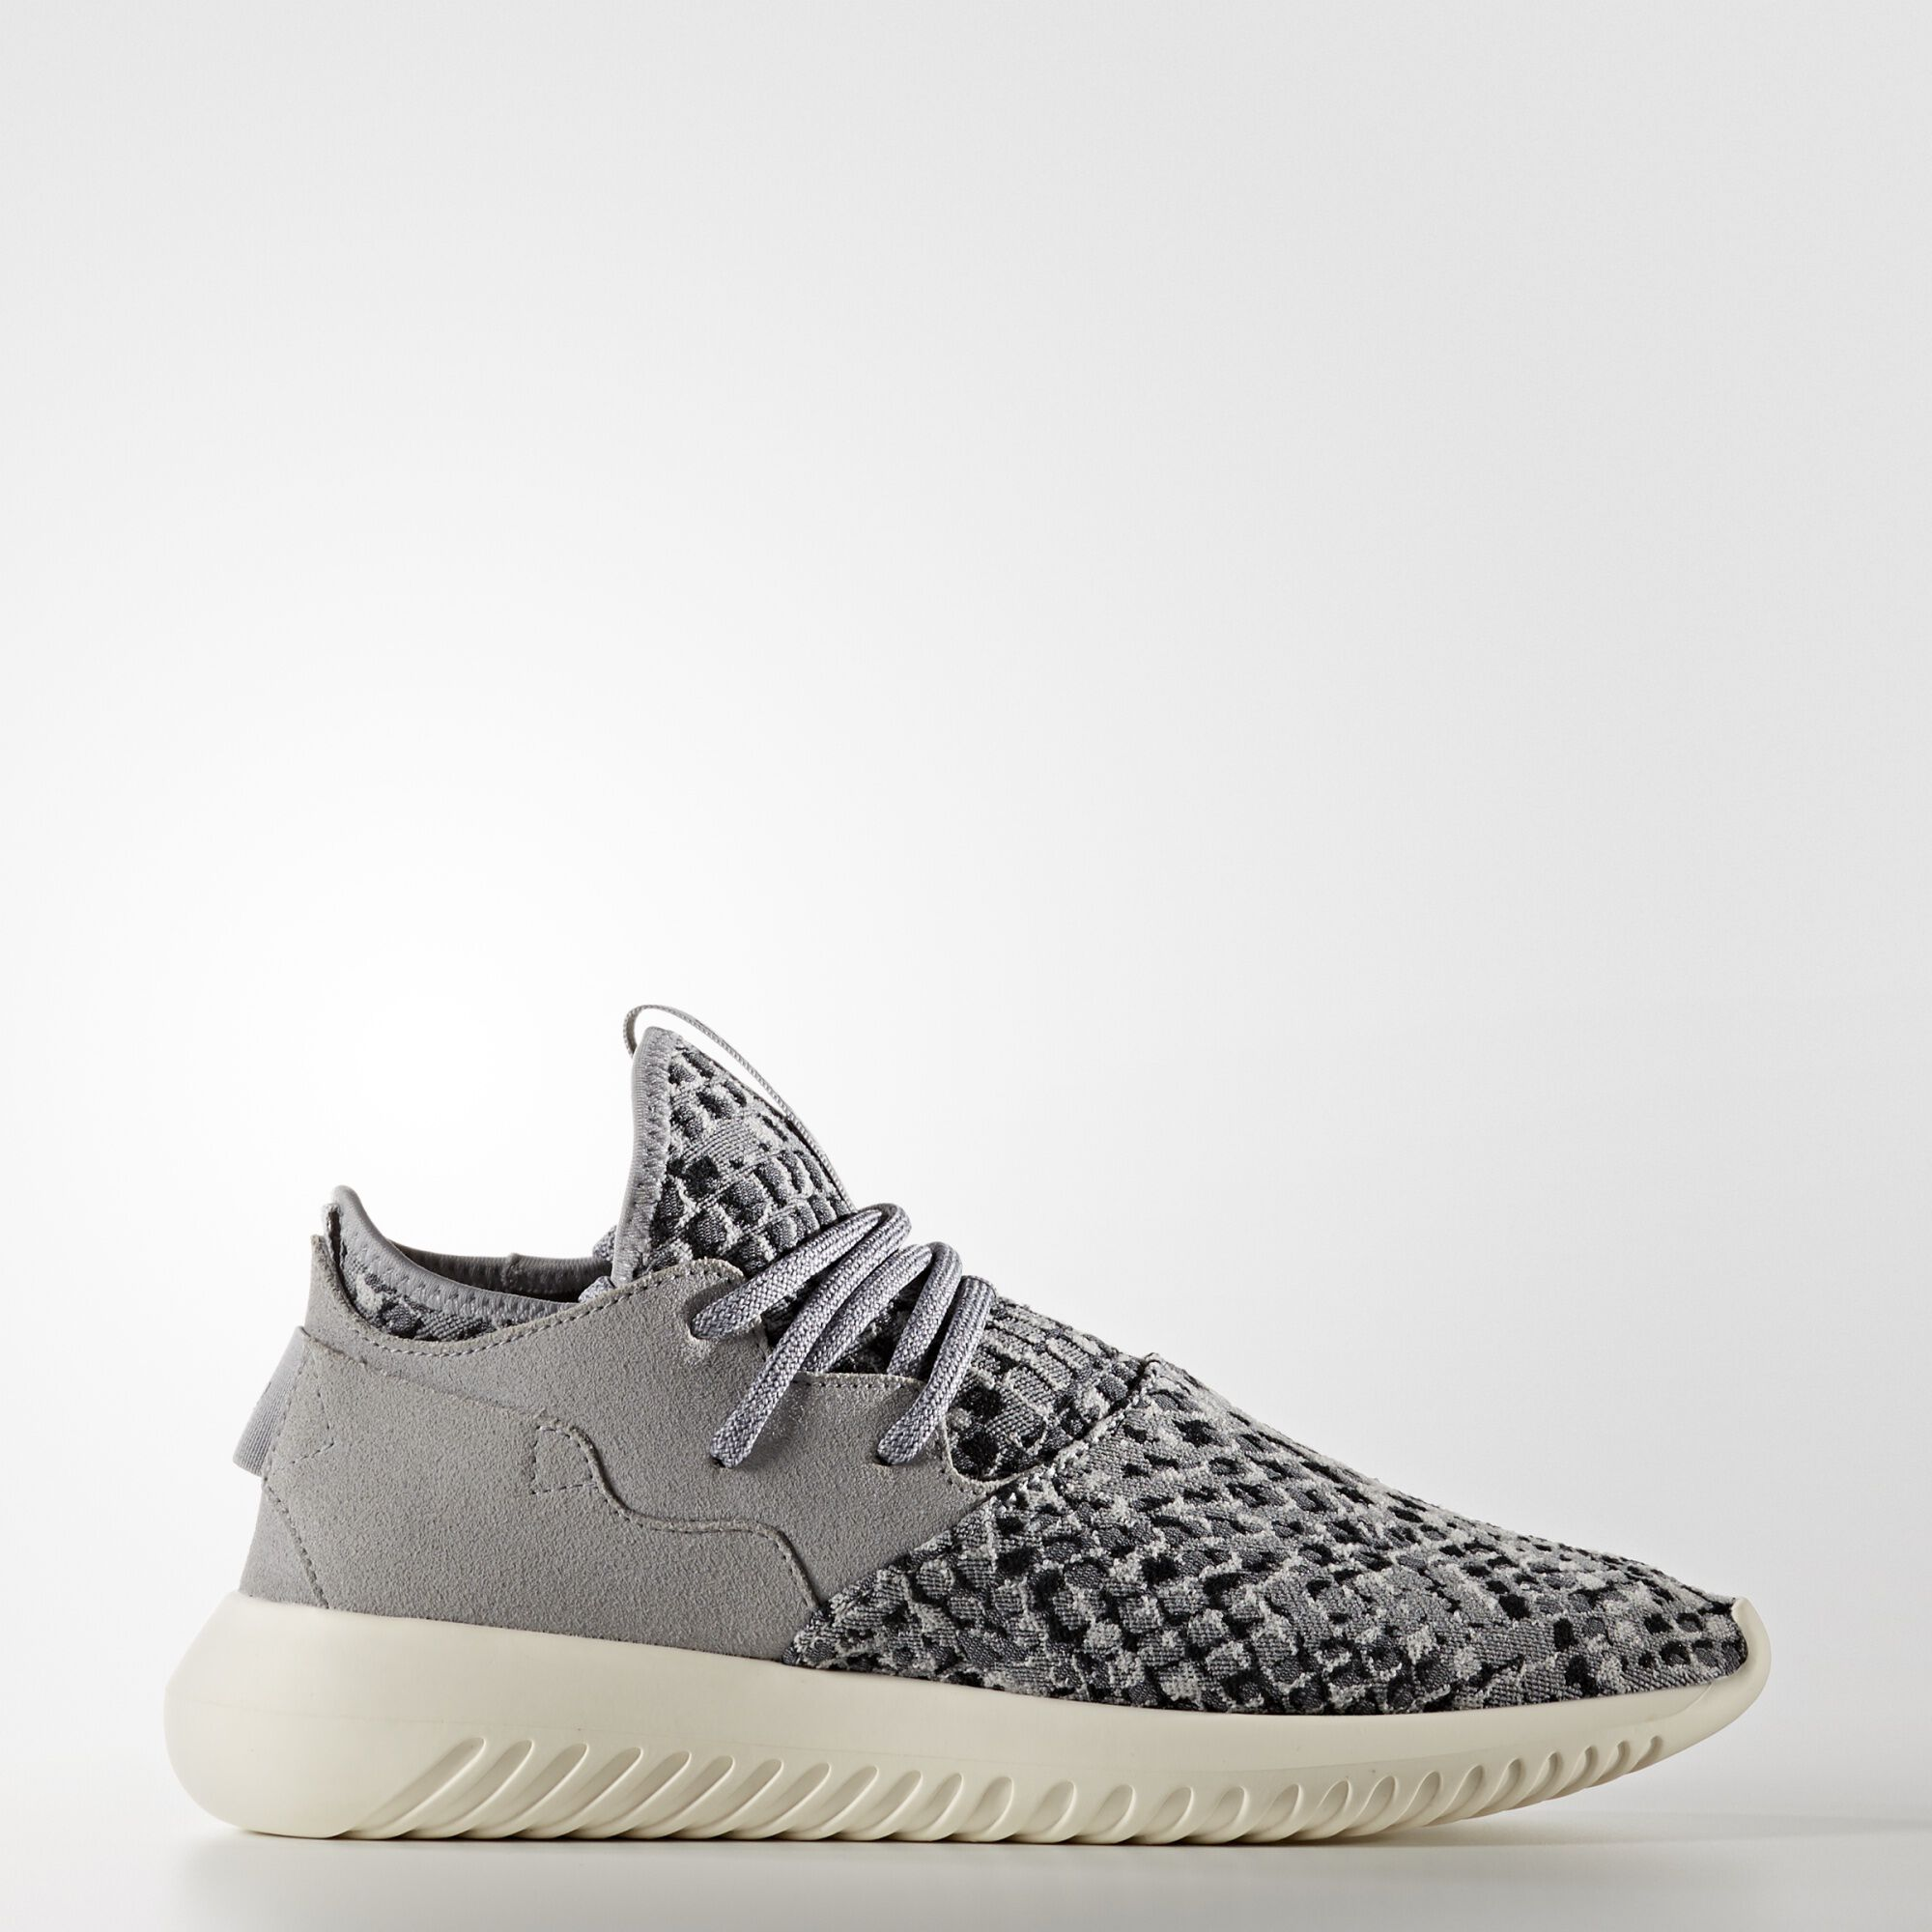 Cheap Womens Black Adidas Tubular Viral Trainers at Soletrader Outlet